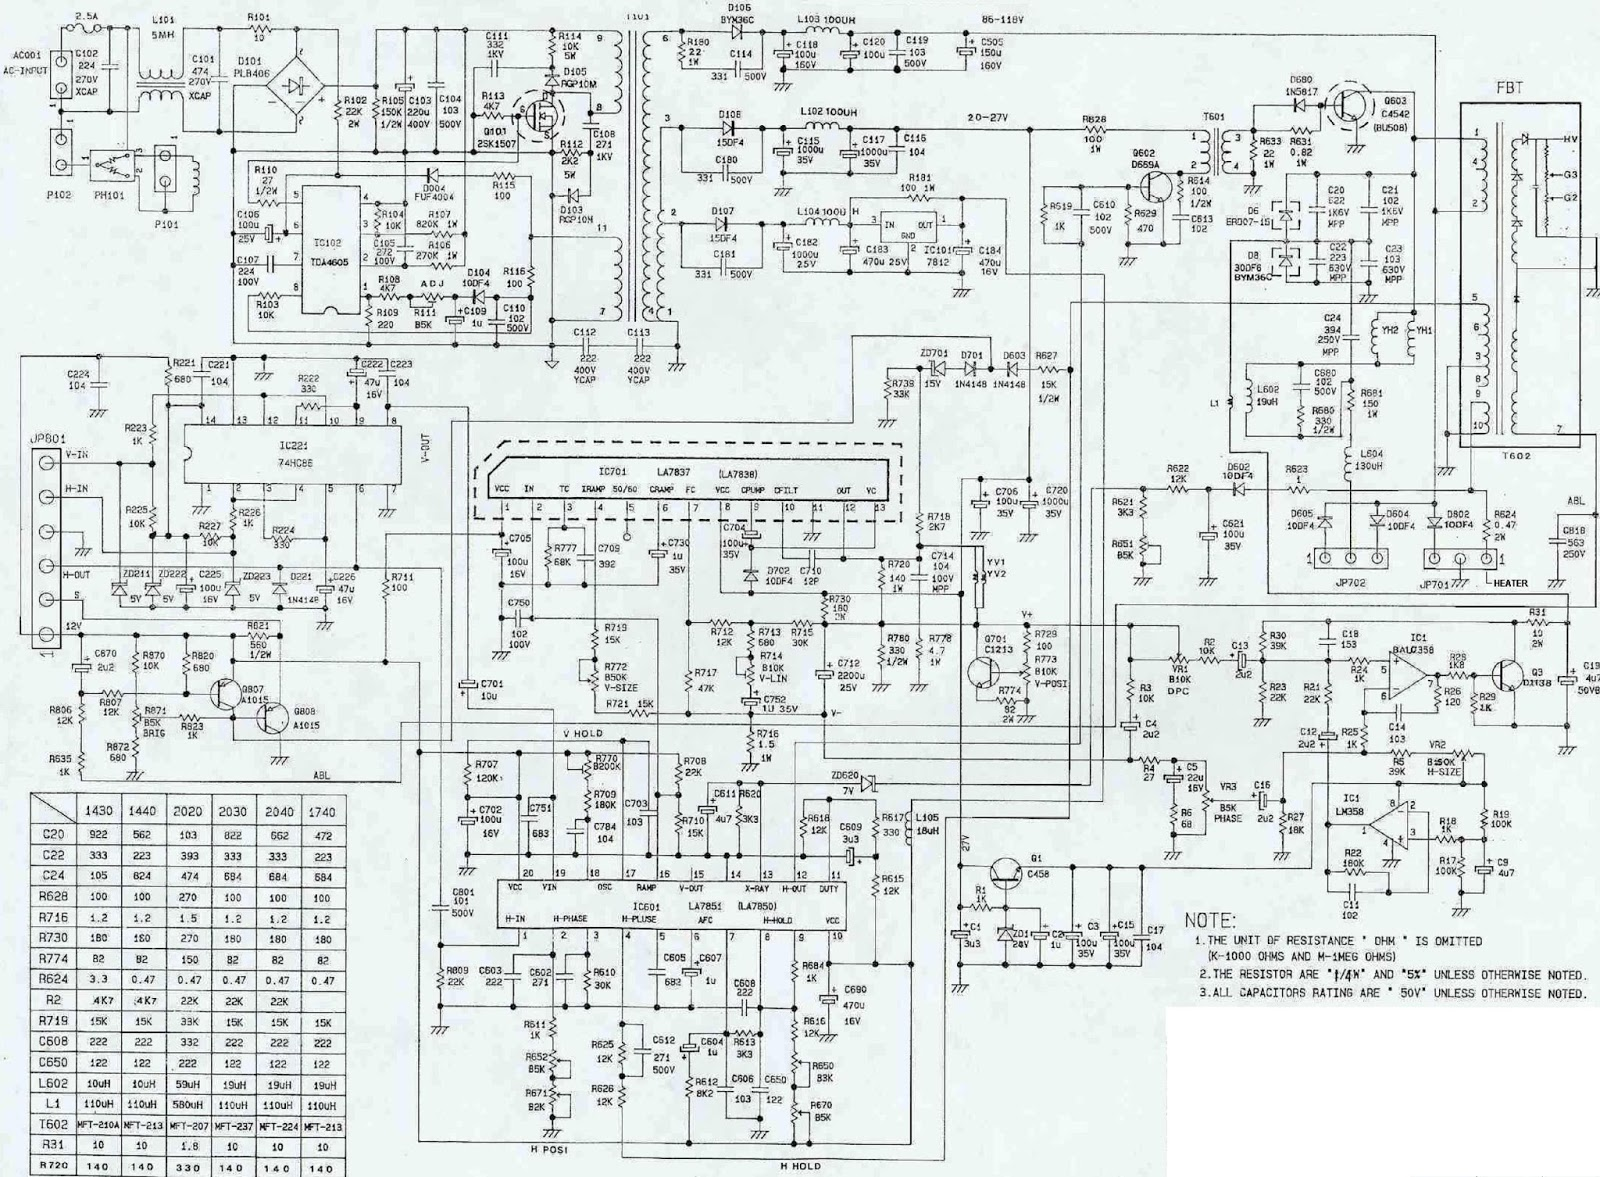 medium resolution of welcome sony playstation 3 schematic diagram logic circuit diagram schematic circuit diagram